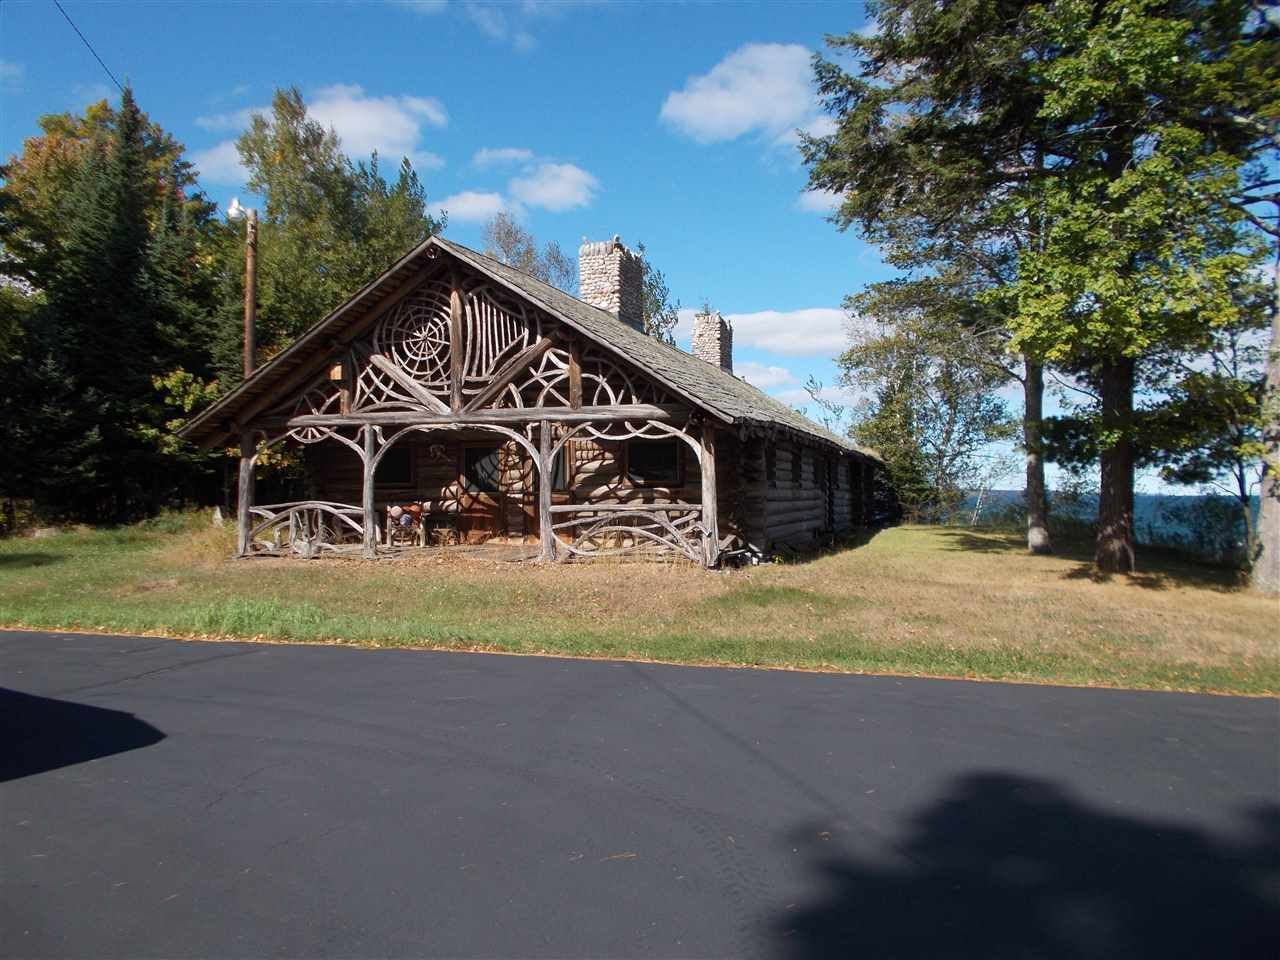 porch cabins portfolio michigan of vacation all rentals northern our in homes escapes browse